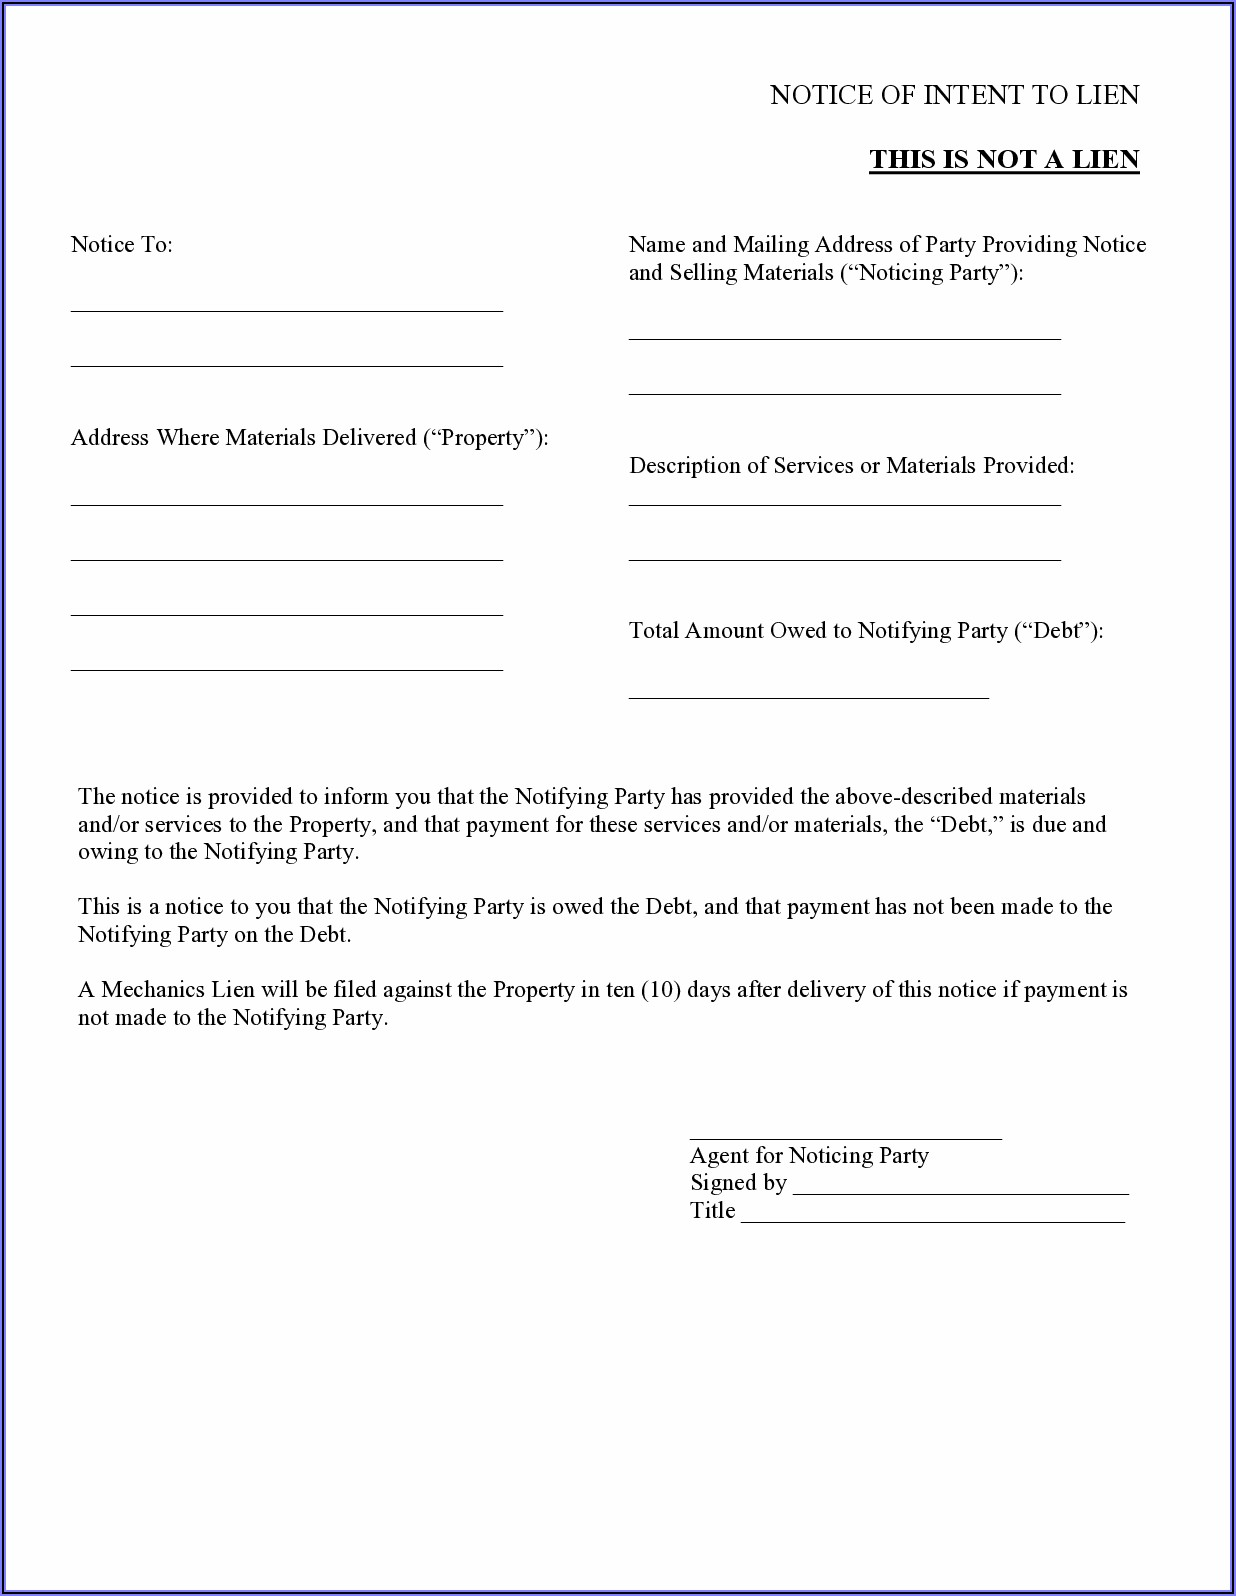 Illinois Mechanics Lien Form Pdf